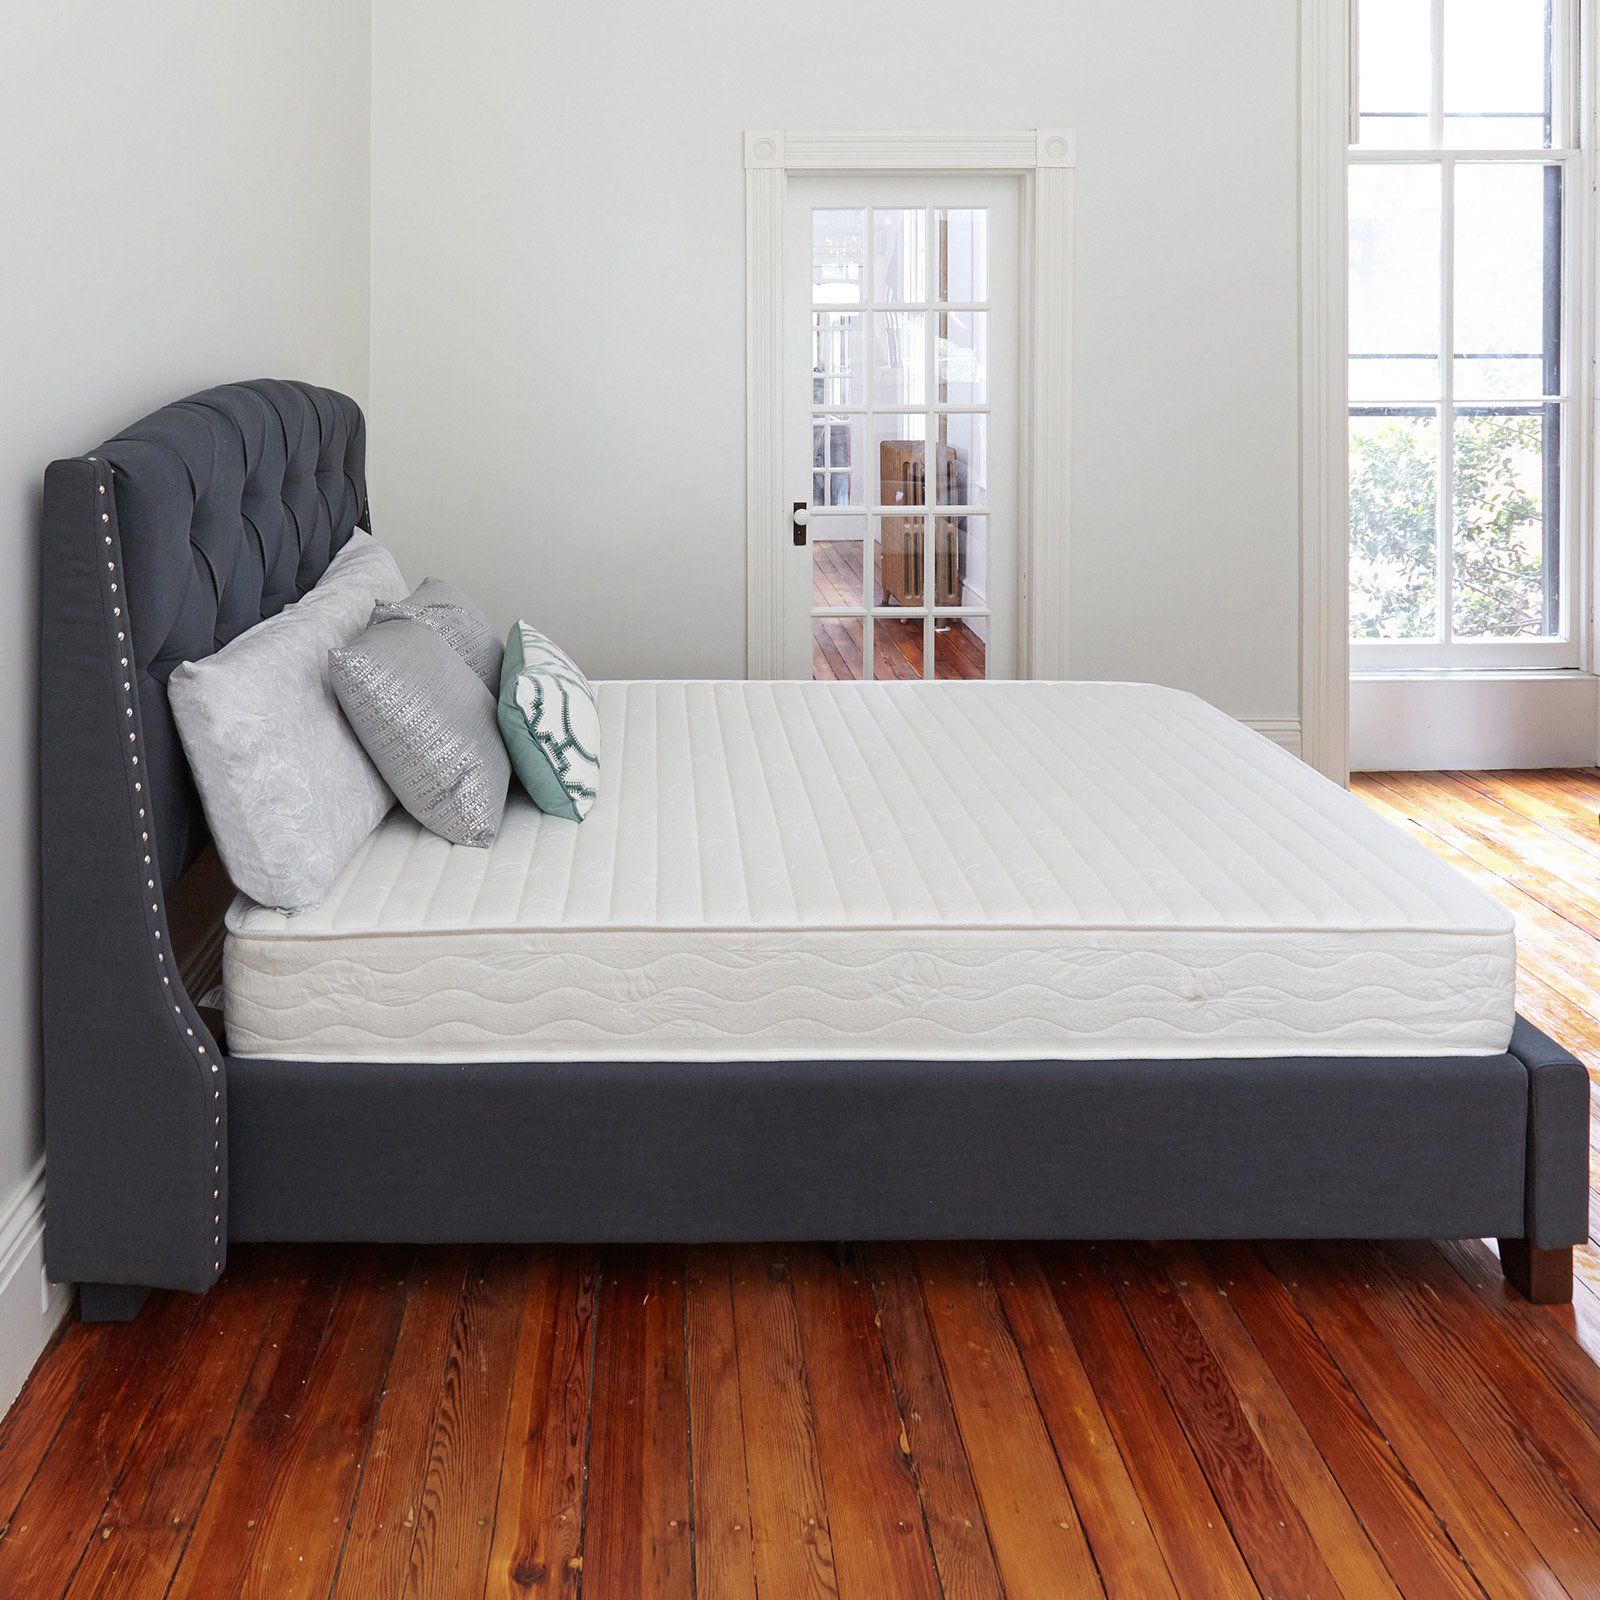 Classic Brands Advantage 8 in. Plush Innerspring Mattress